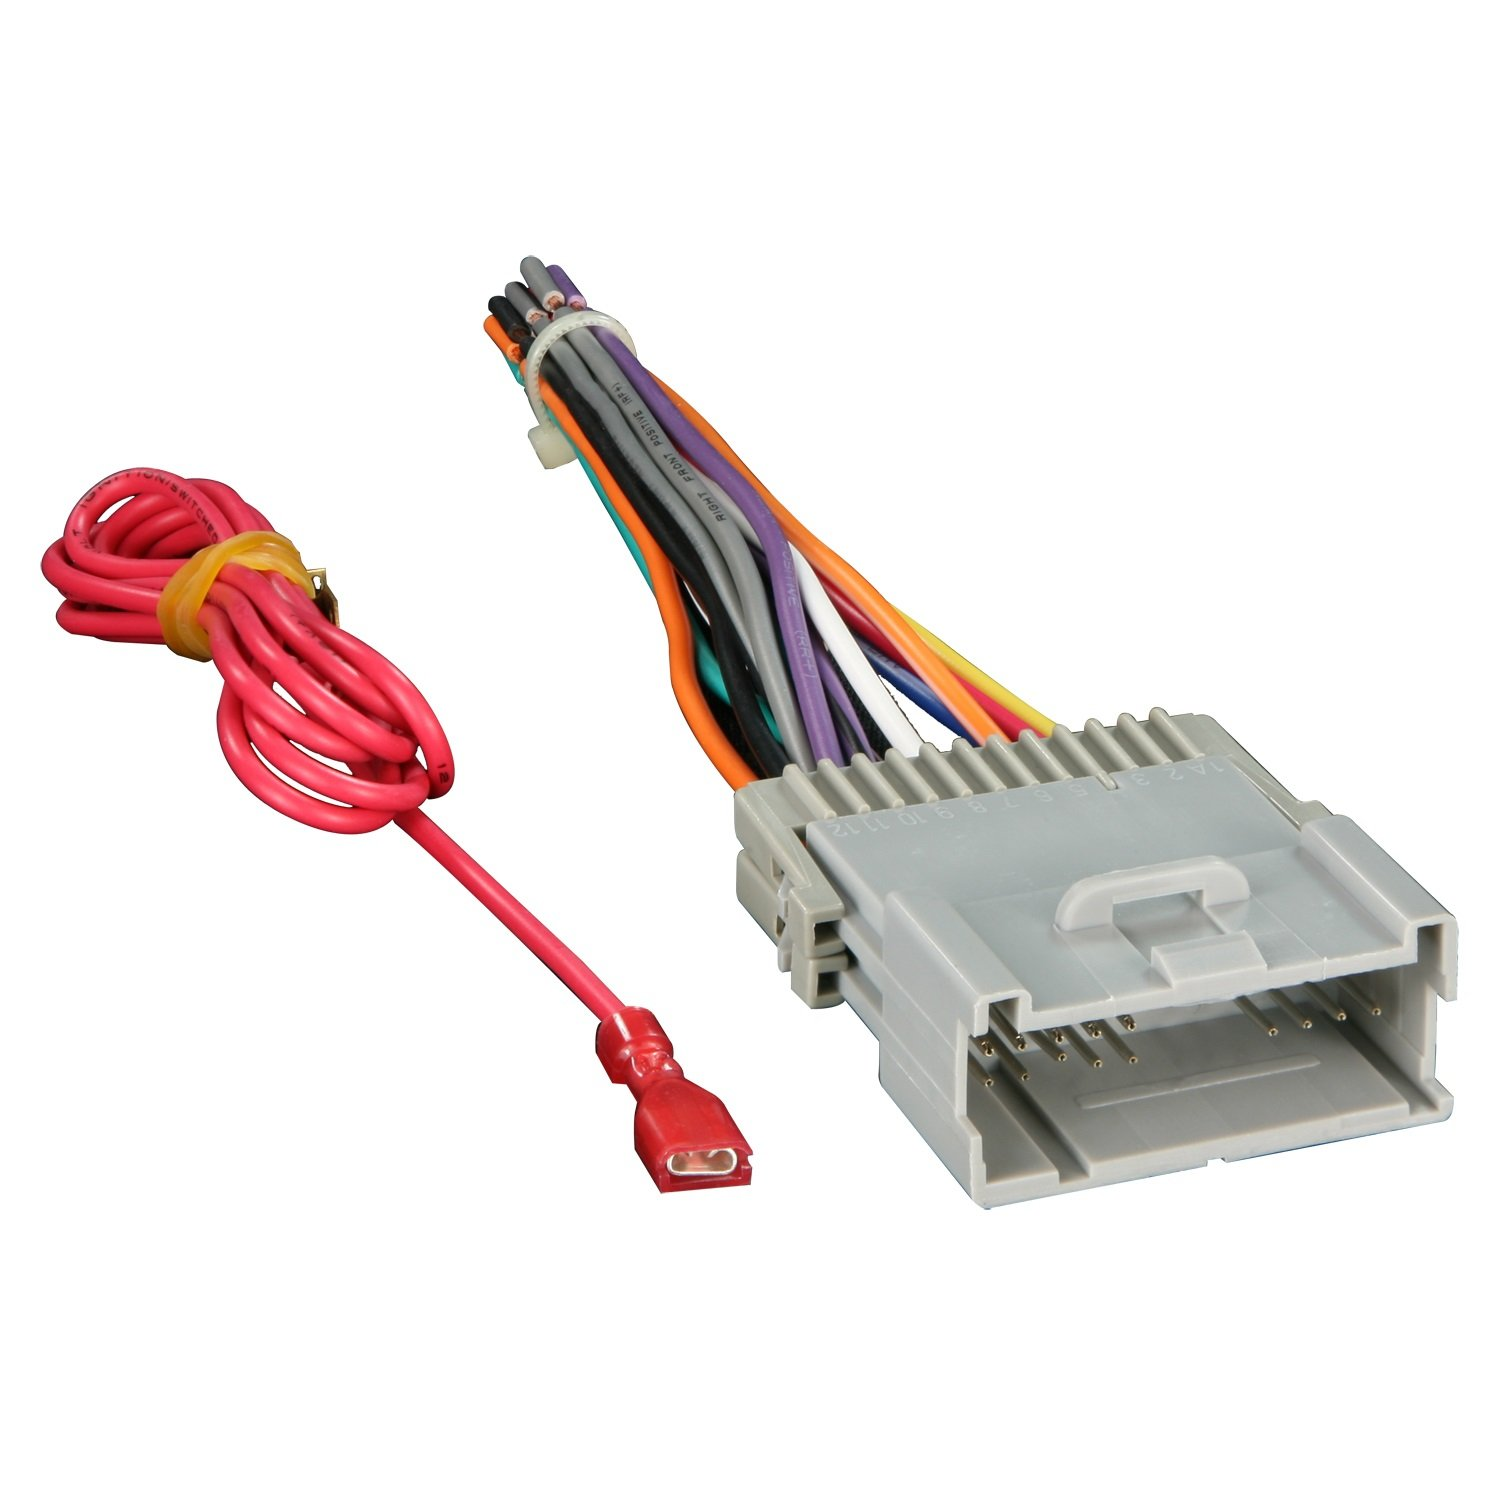 61eewxp9orL._SL1500_ amazon com metra 70 2003 radio wiring harness for gm 98 08 what is a wire harness in a car at panicattacktreatment.co